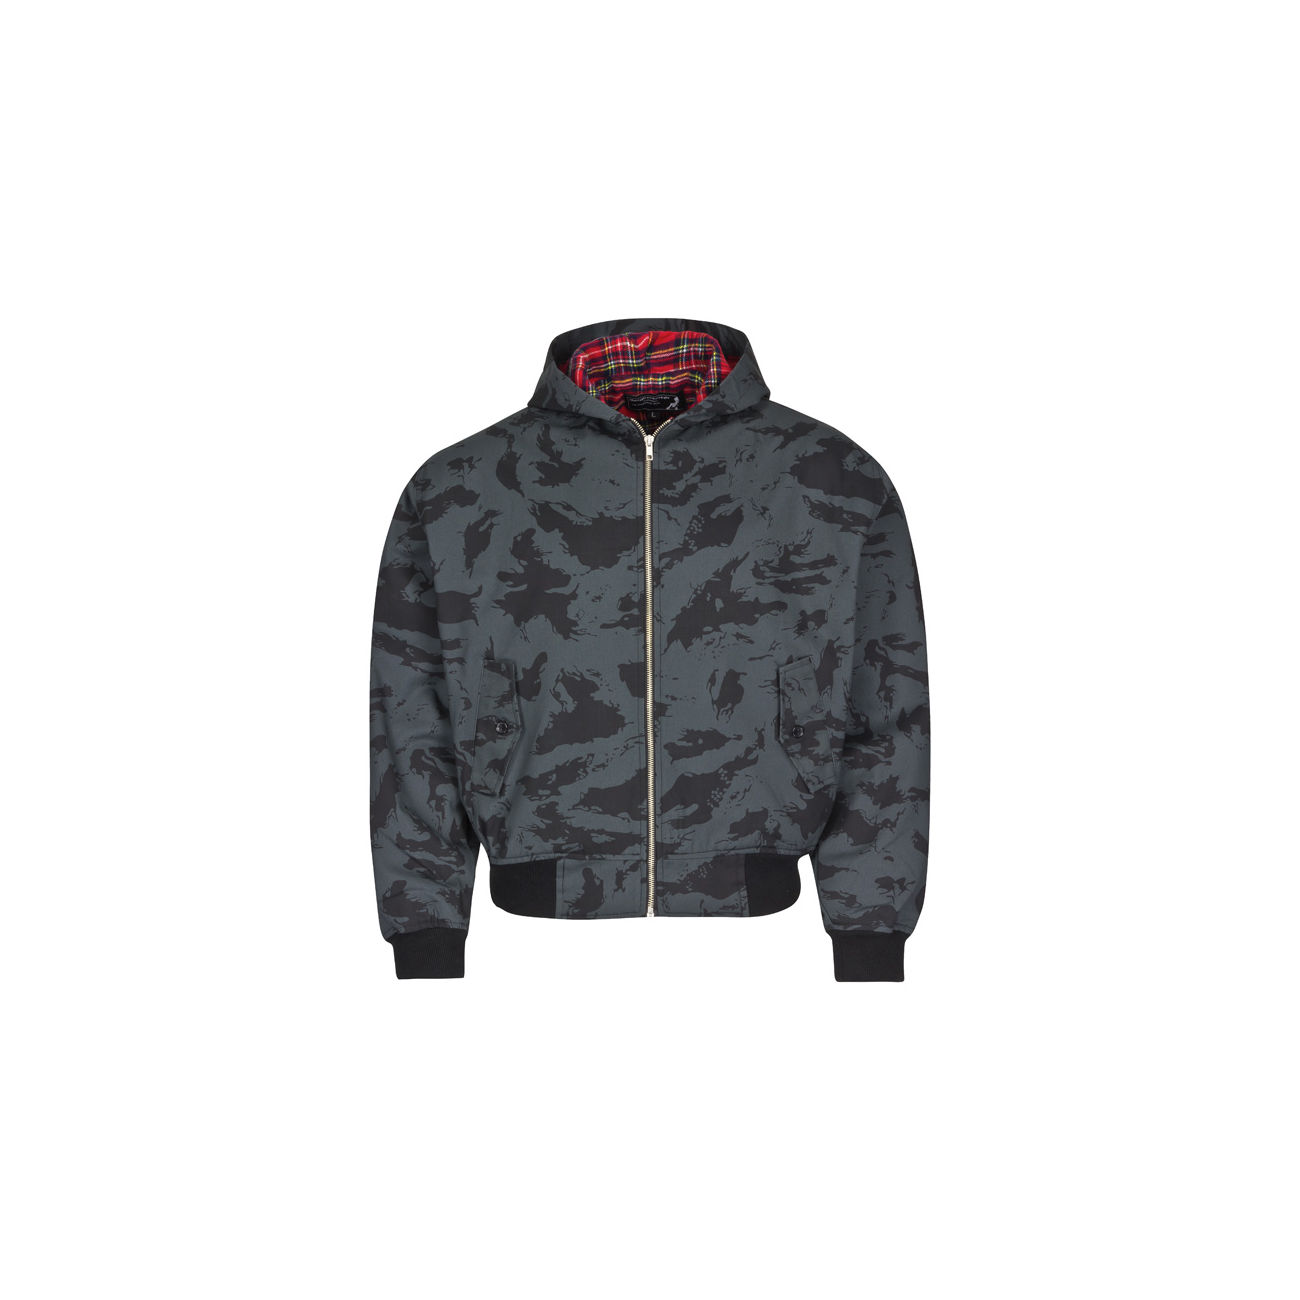 Harrington Jacke, russian-night-camo mit Kapuze 0